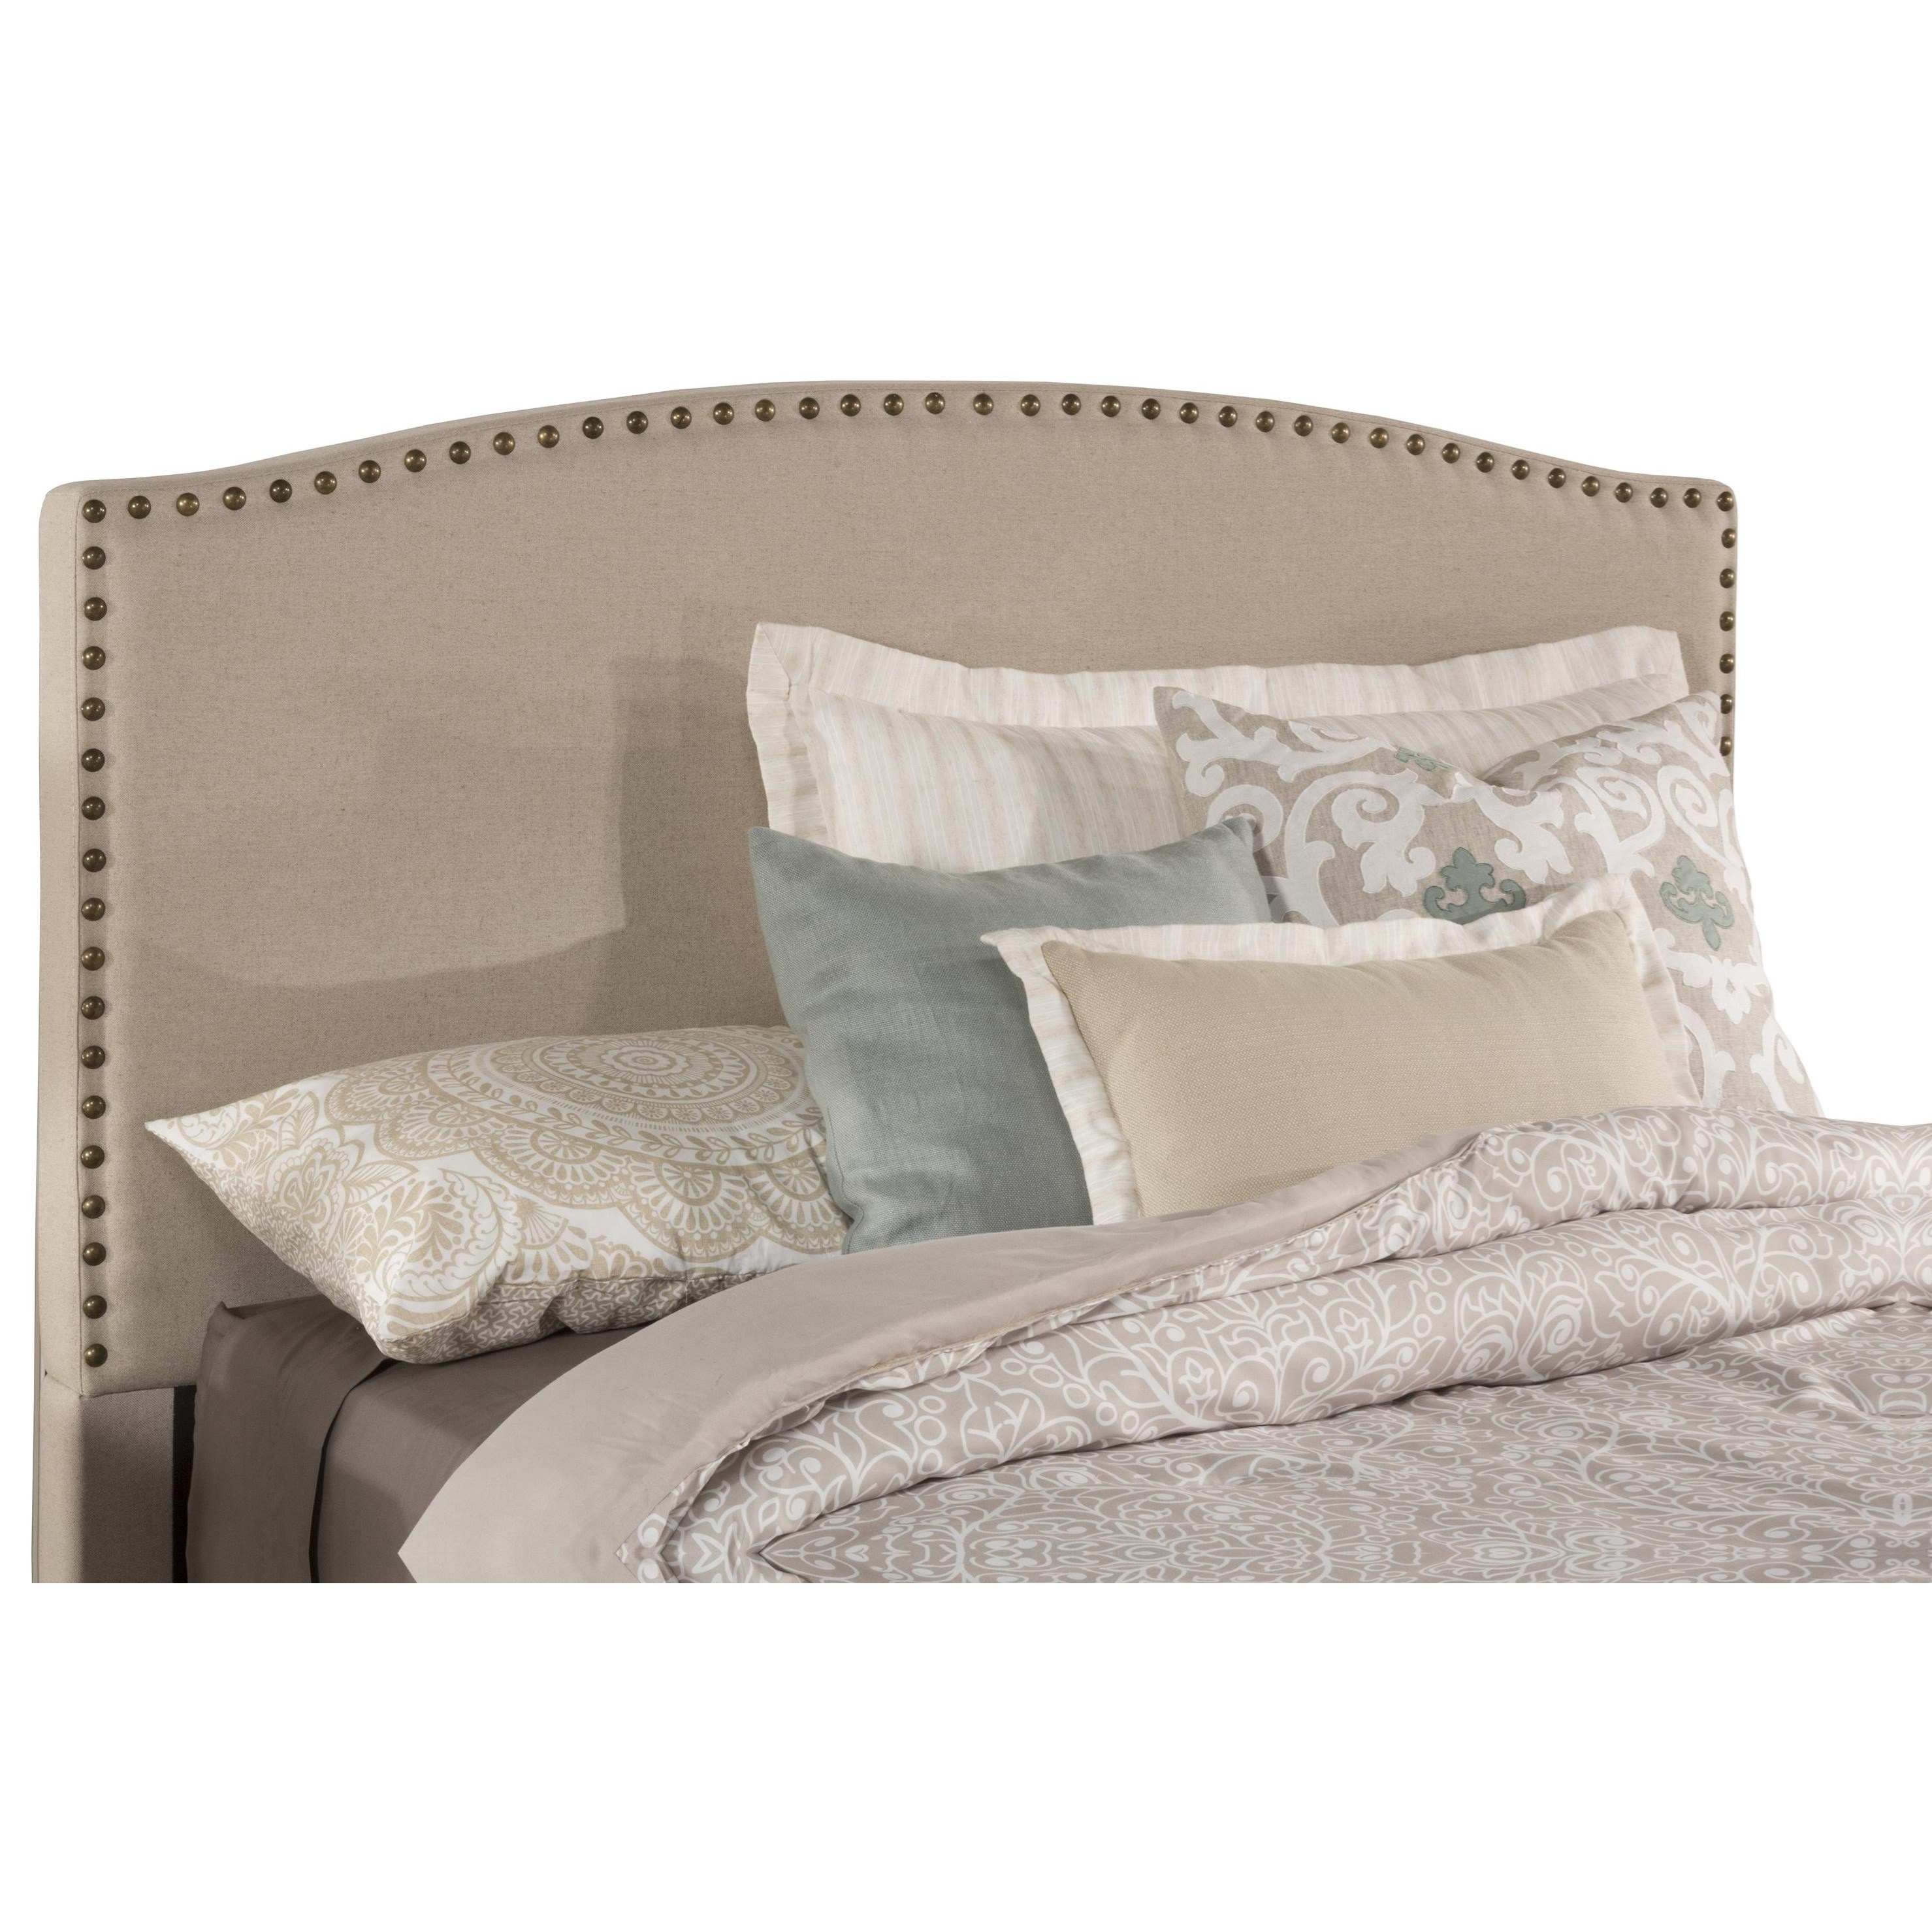 Hillsdale Kerstein King Headboard with Frame - Item Number: 1932HKT